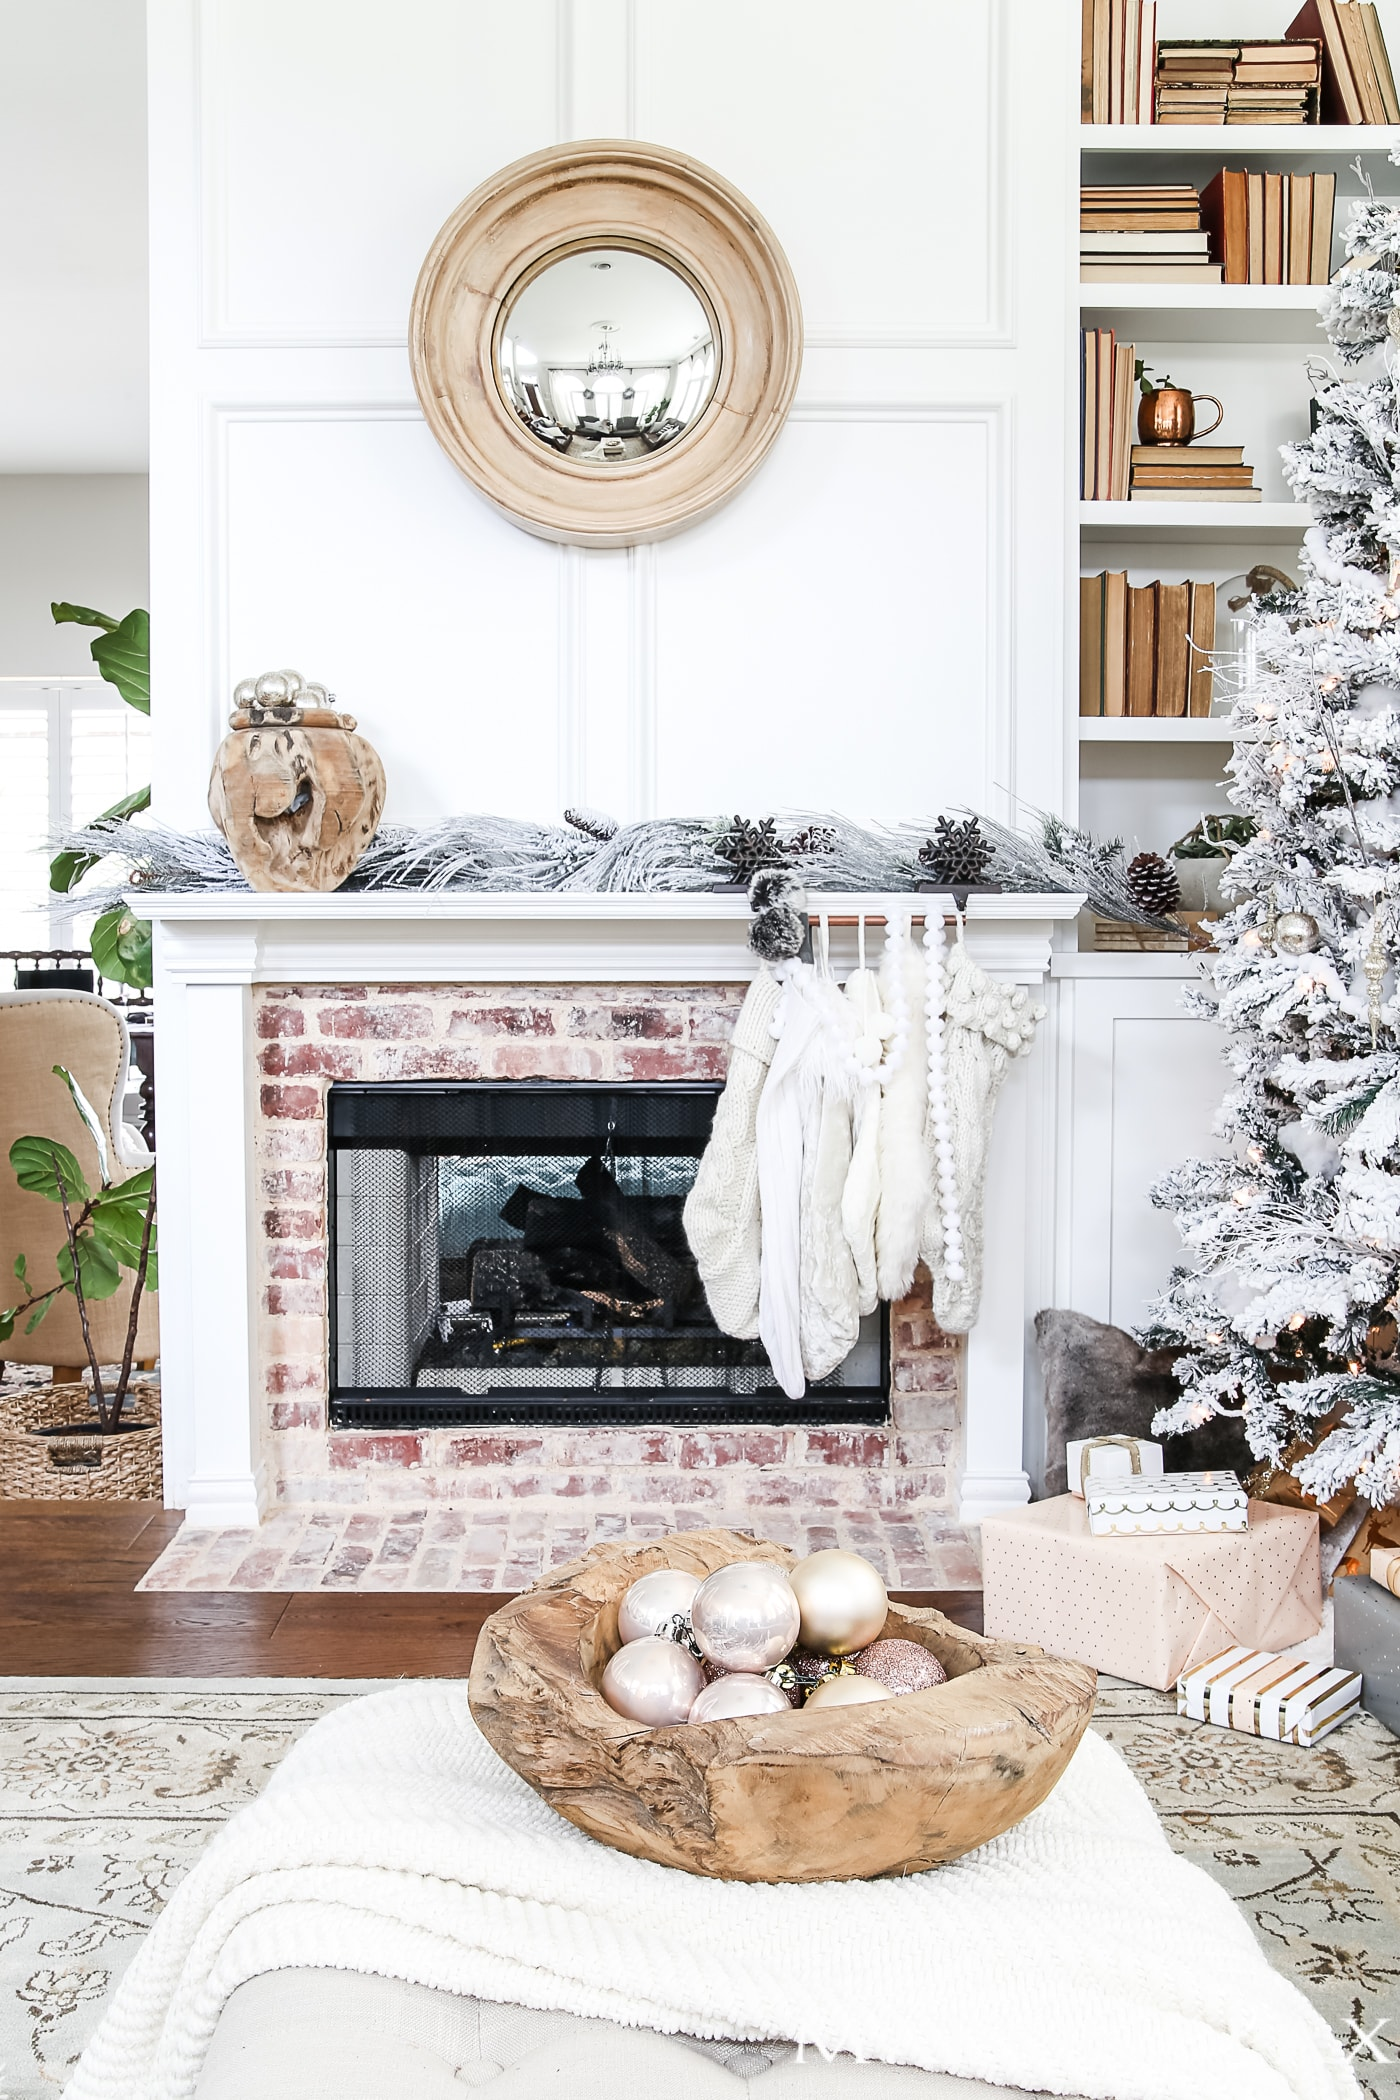 Simple Holiday Decorating: Christmas Home Tour - Maison de Pax